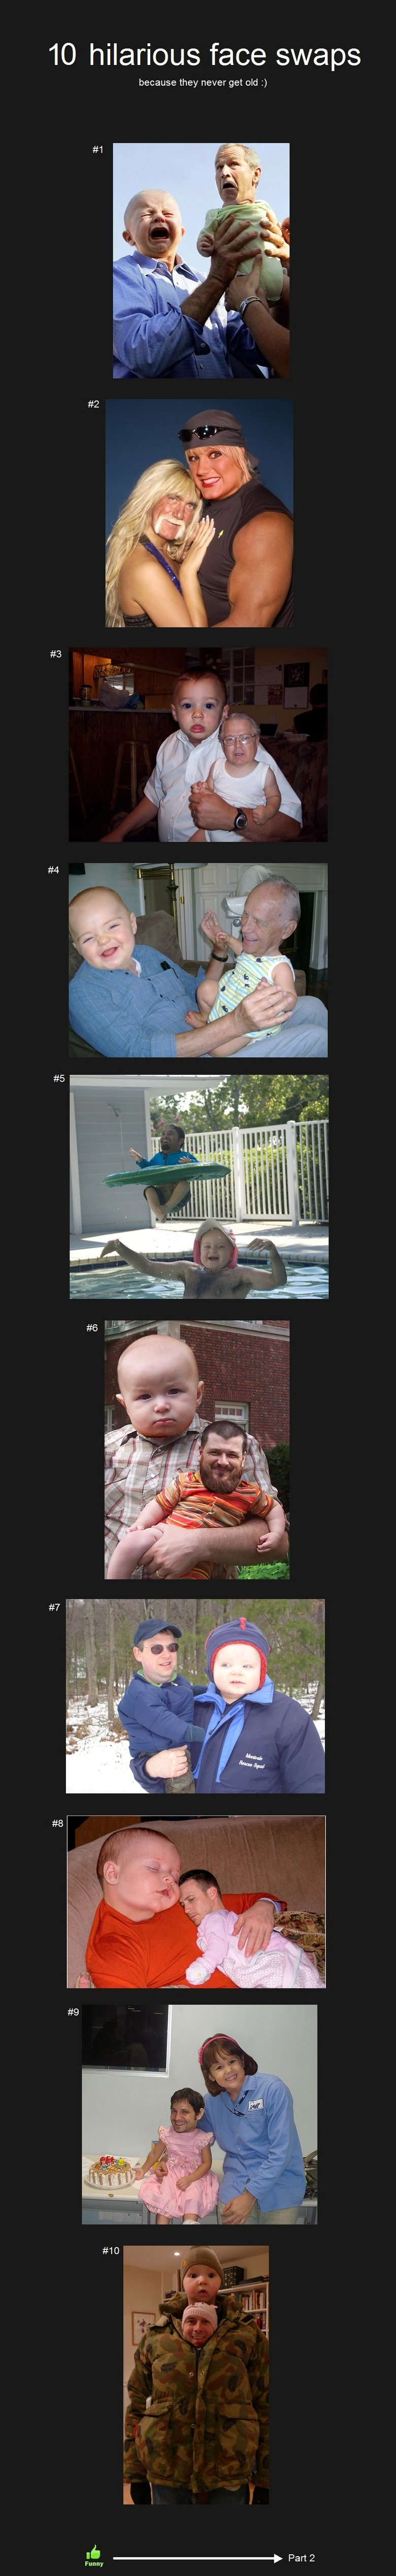 Face swaps. The babie swaps are the funniest.. 10 hilarious face swaps because they never get old :). his isnt mine, but i thought it was really funny, so im sharing it. http://funnyjunk.com/funny_pictures/574852/Ditto/